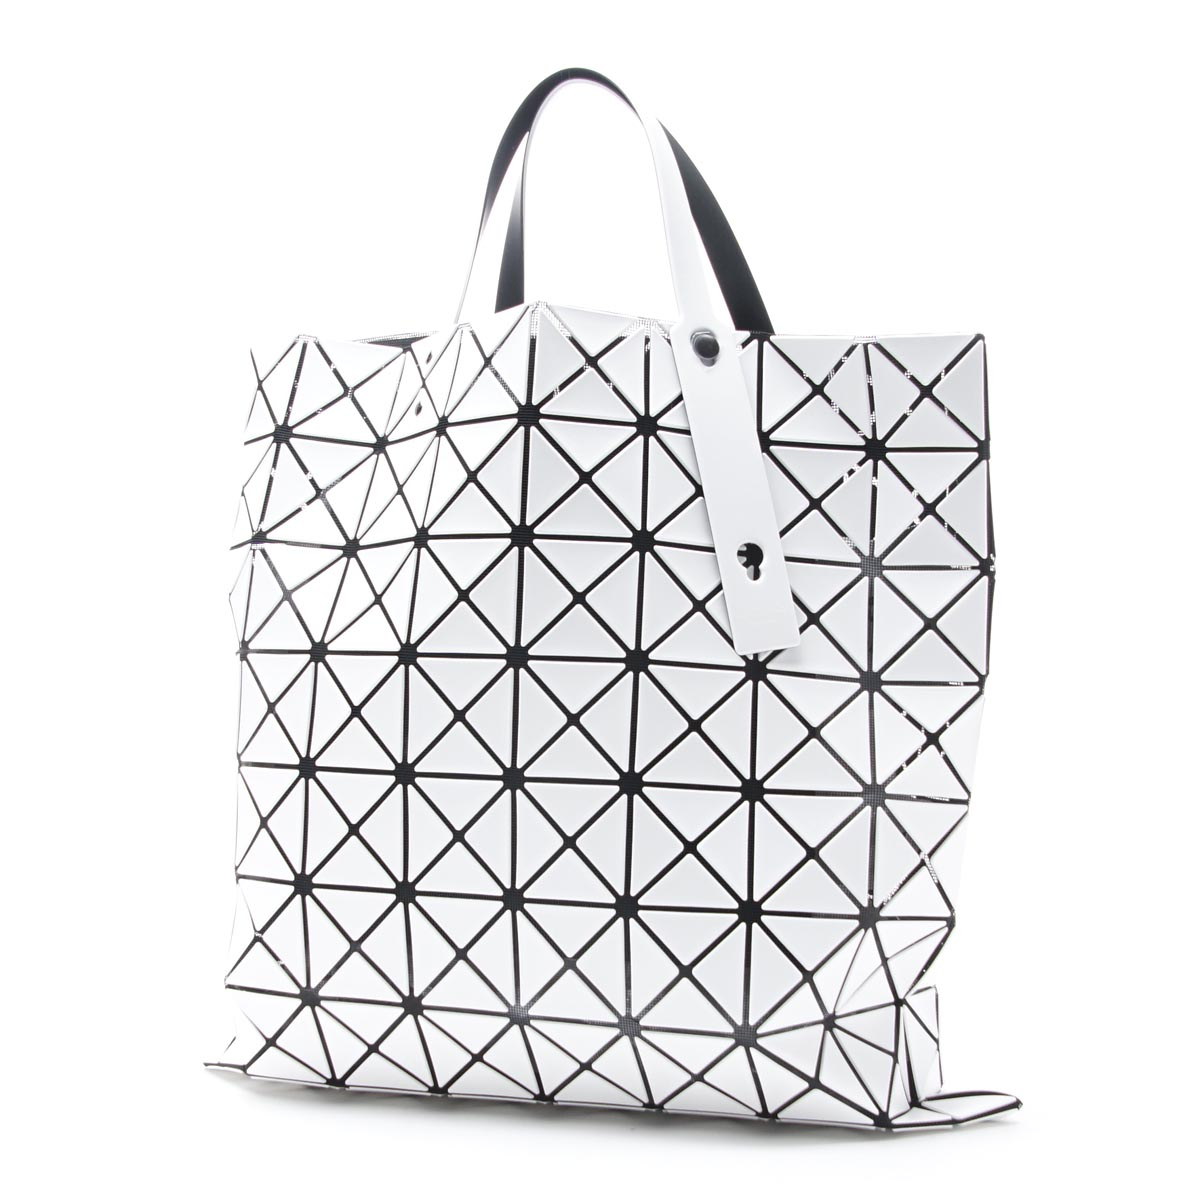 Tote bag drawing -  Bao Bao Issey Miyake Tote Bag Lucent Pro Matte Lucent 8